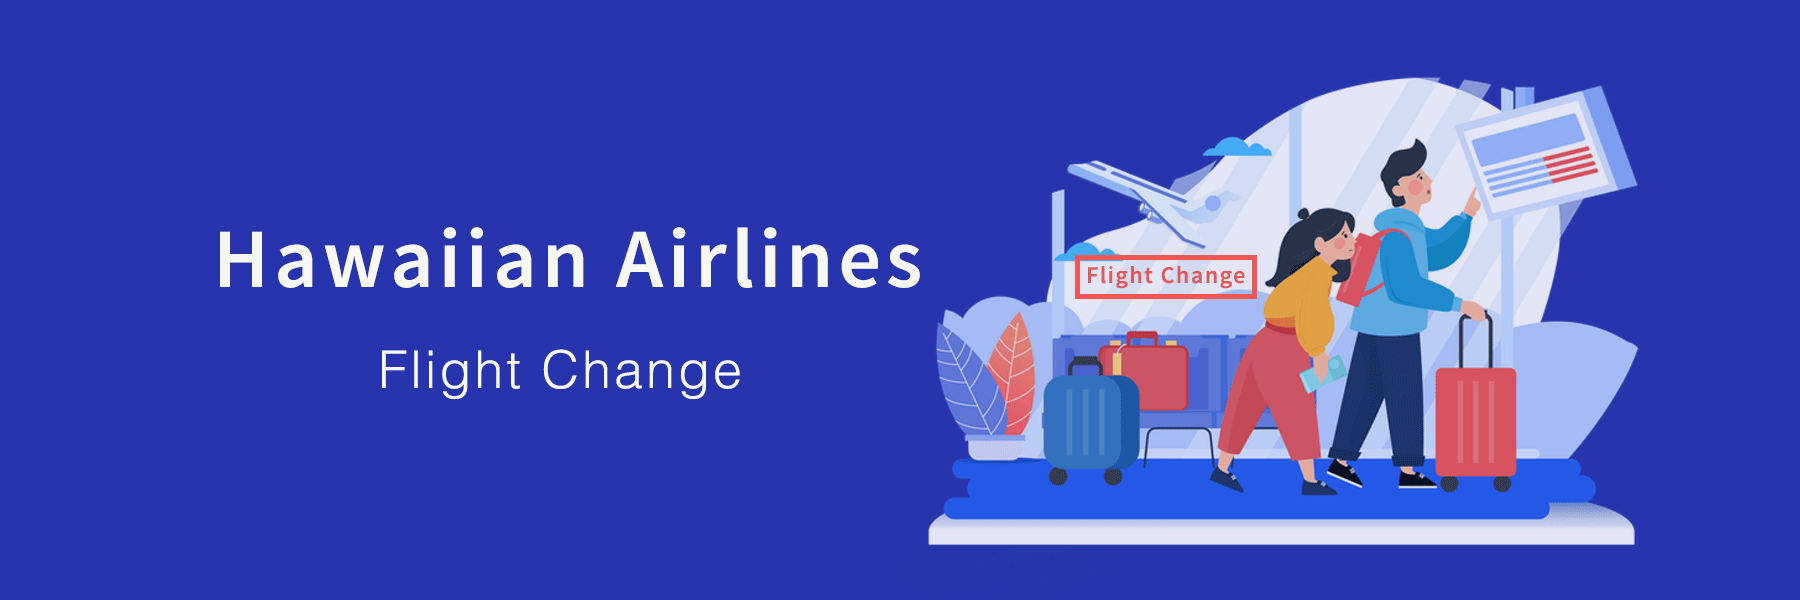 How to Change flight on Hawaiian Airlines?